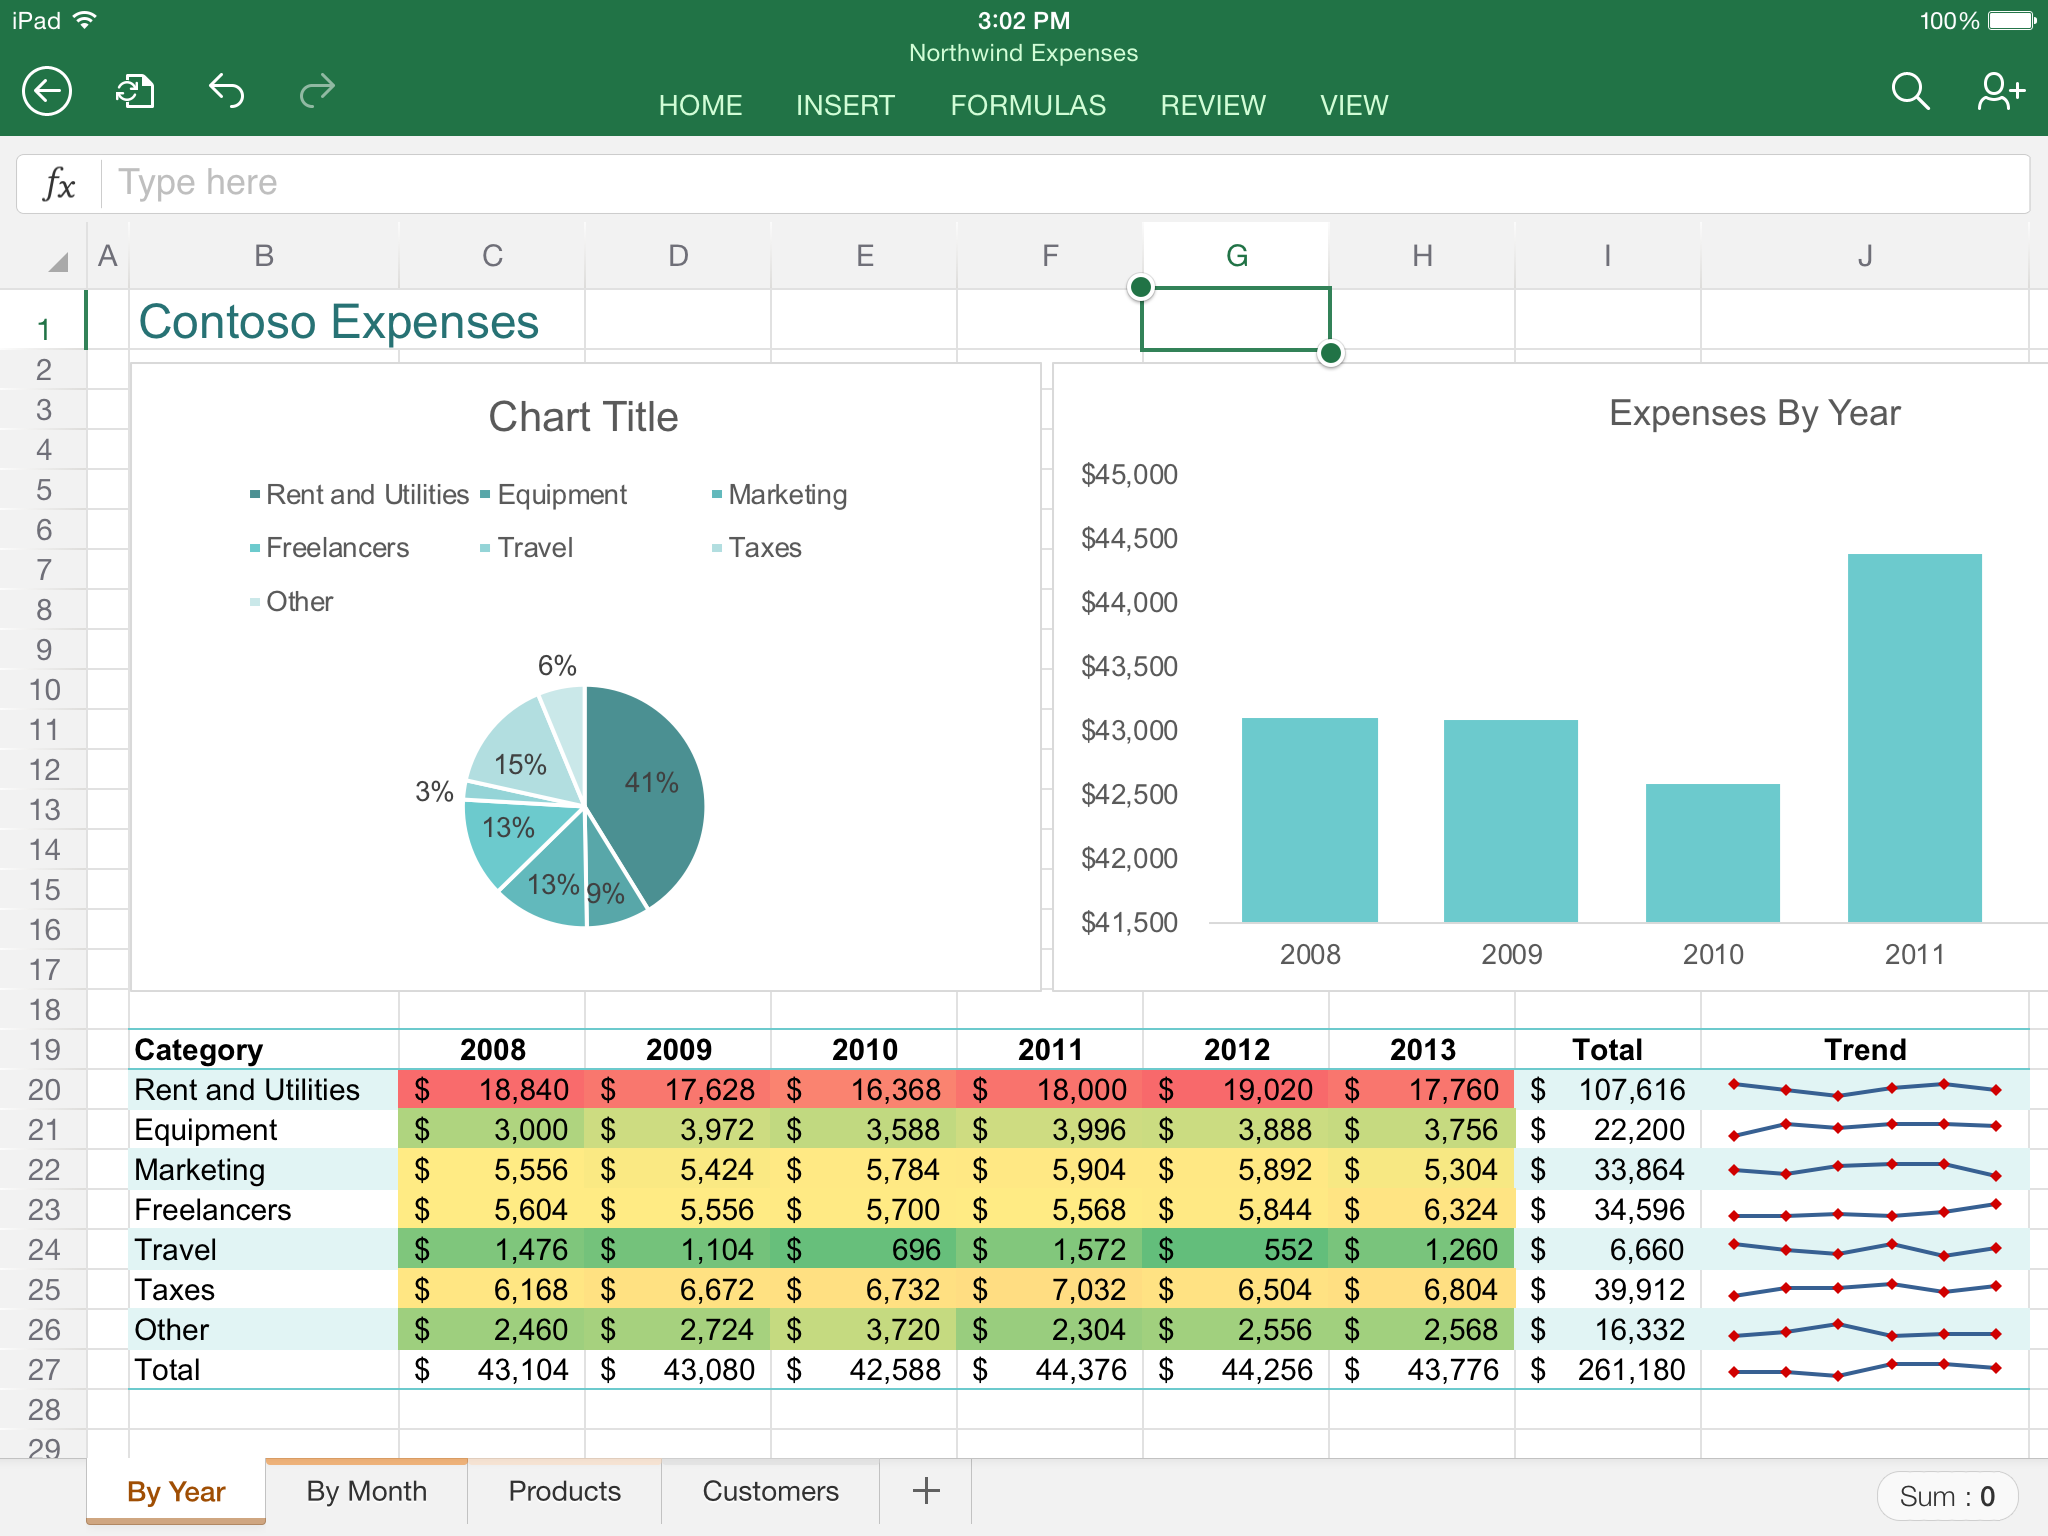 Ediblewildsus  Inspiring App Highlight Excel  Mobile Digital Now With Extraordinary Excel In Action With Delectable Gauge Chart In Excel Also Hp Qc Excel Add In In Addition Microsoft Excel Sparklines And Excel Monthly Payment Formula As Well As How To Find The Mean Median And Mode In Excel Additionally Microsoft Excel For Windows  From Youstonybrookedu With Ediblewildsus  Extraordinary App Highlight Excel  Mobile Digital Now With Delectable Excel In Action And Inspiring Gauge Chart In Excel Also Hp Qc Excel Add In In Addition Microsoft Excel Sparklines From Youstonybrookedu